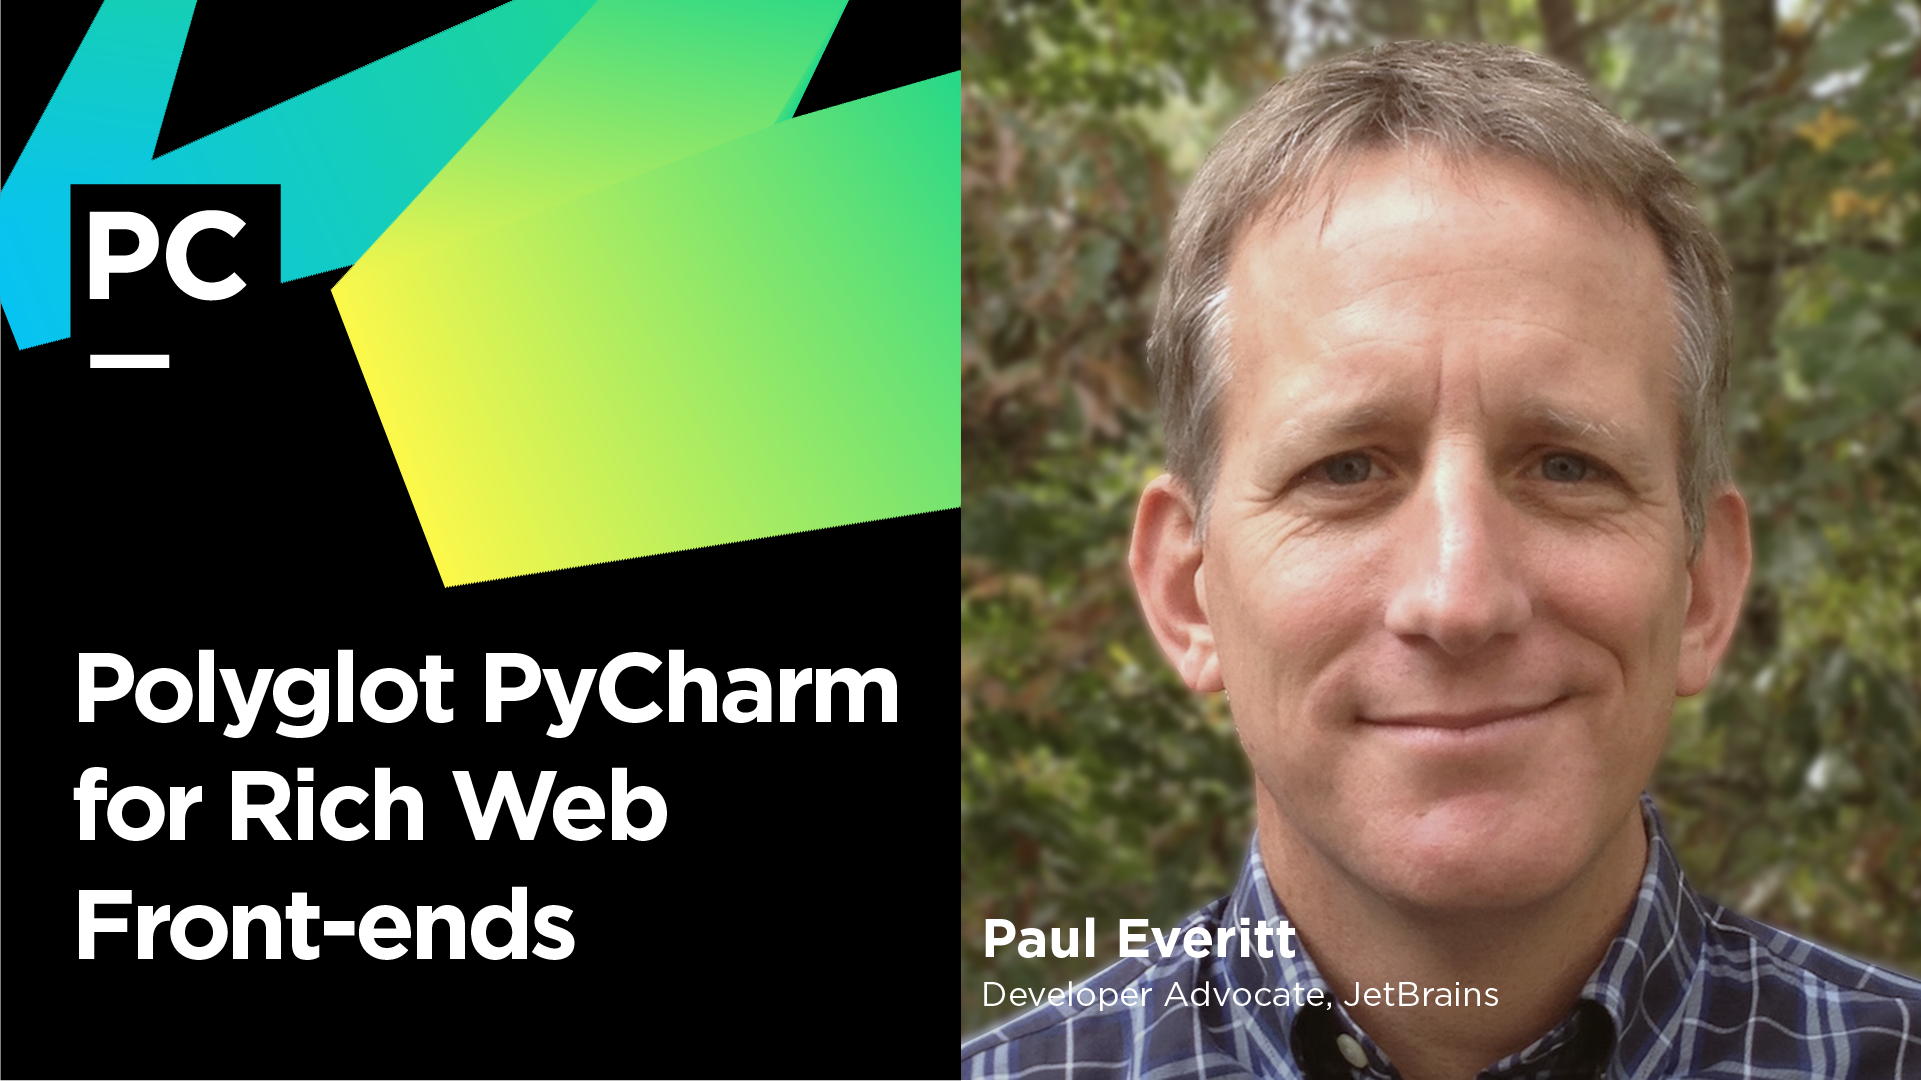 pycharm_webinar_Polyglot_PyCharm_for_Rich_Web_Front-ends